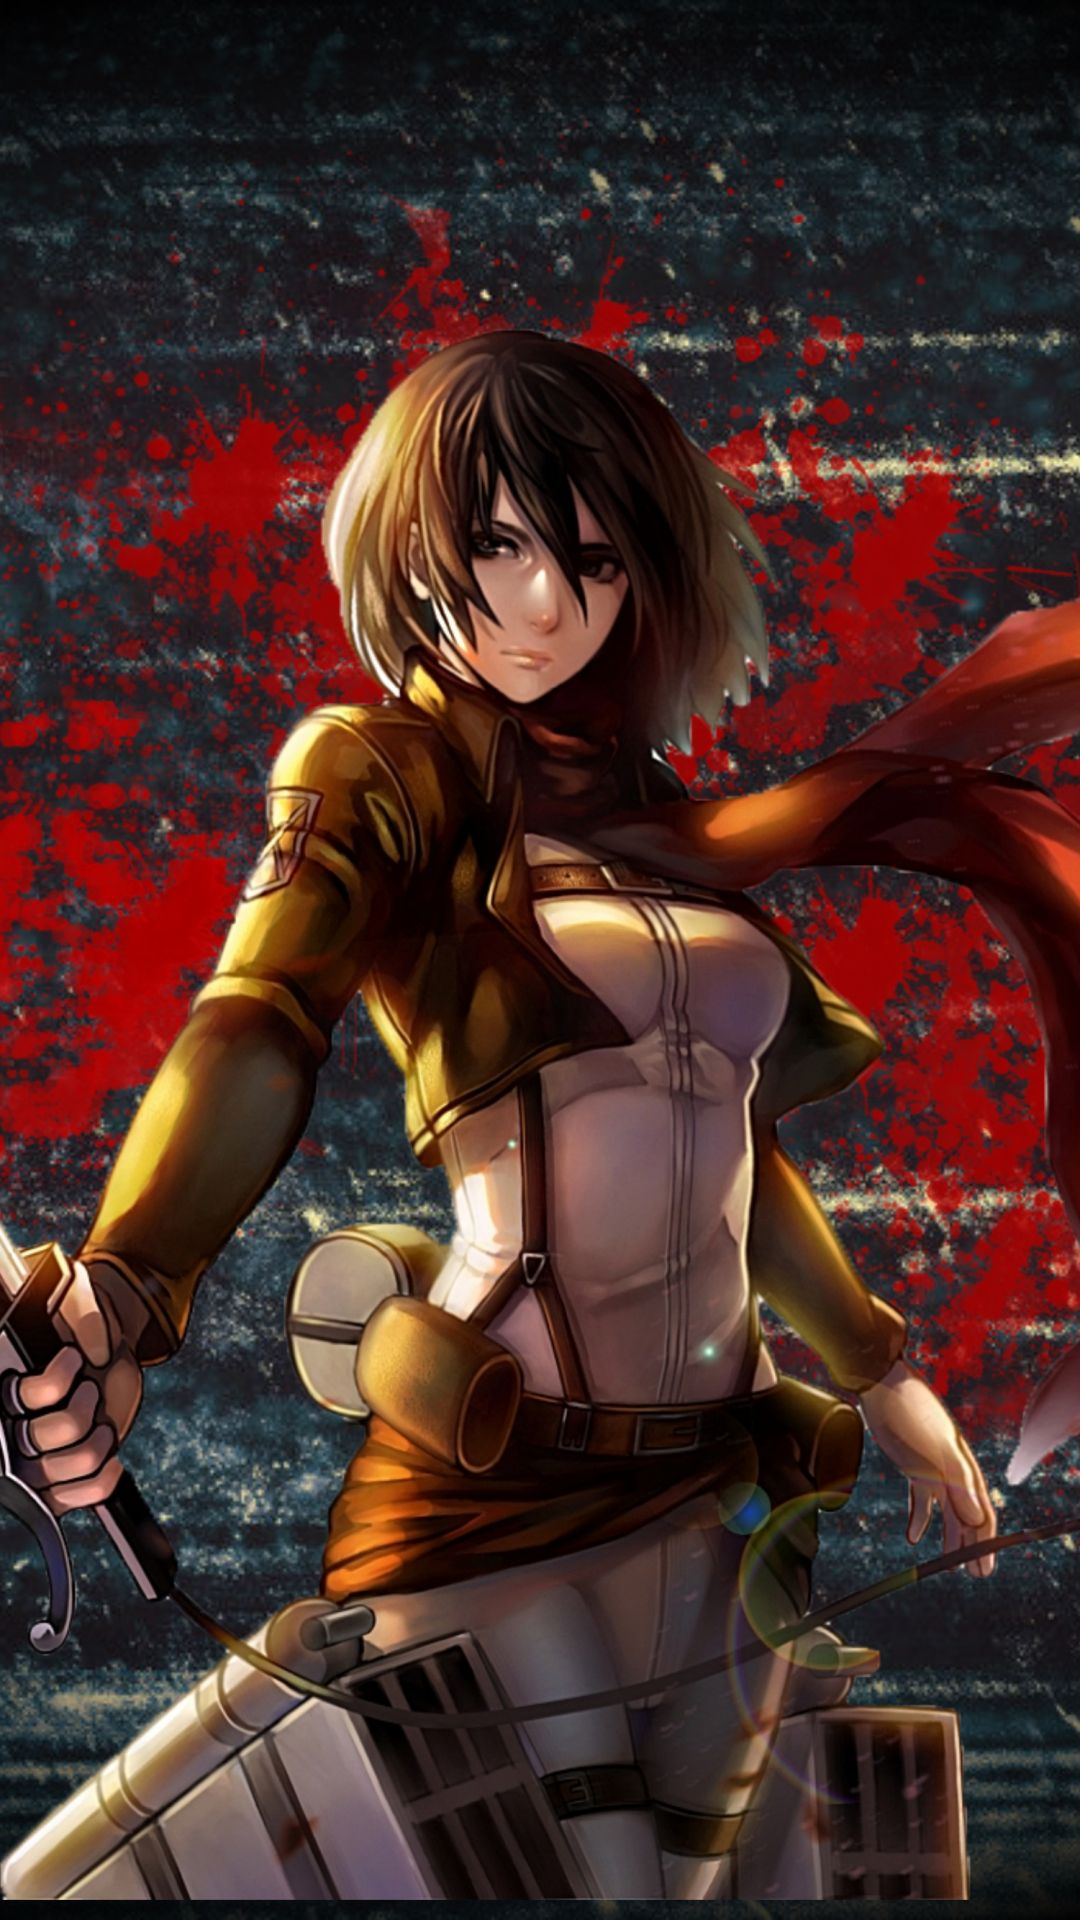 Attack On Titan Mikasa Wallpapers Top Free Attack On Titan Mikasa Backgrounds Wallpaperaccess